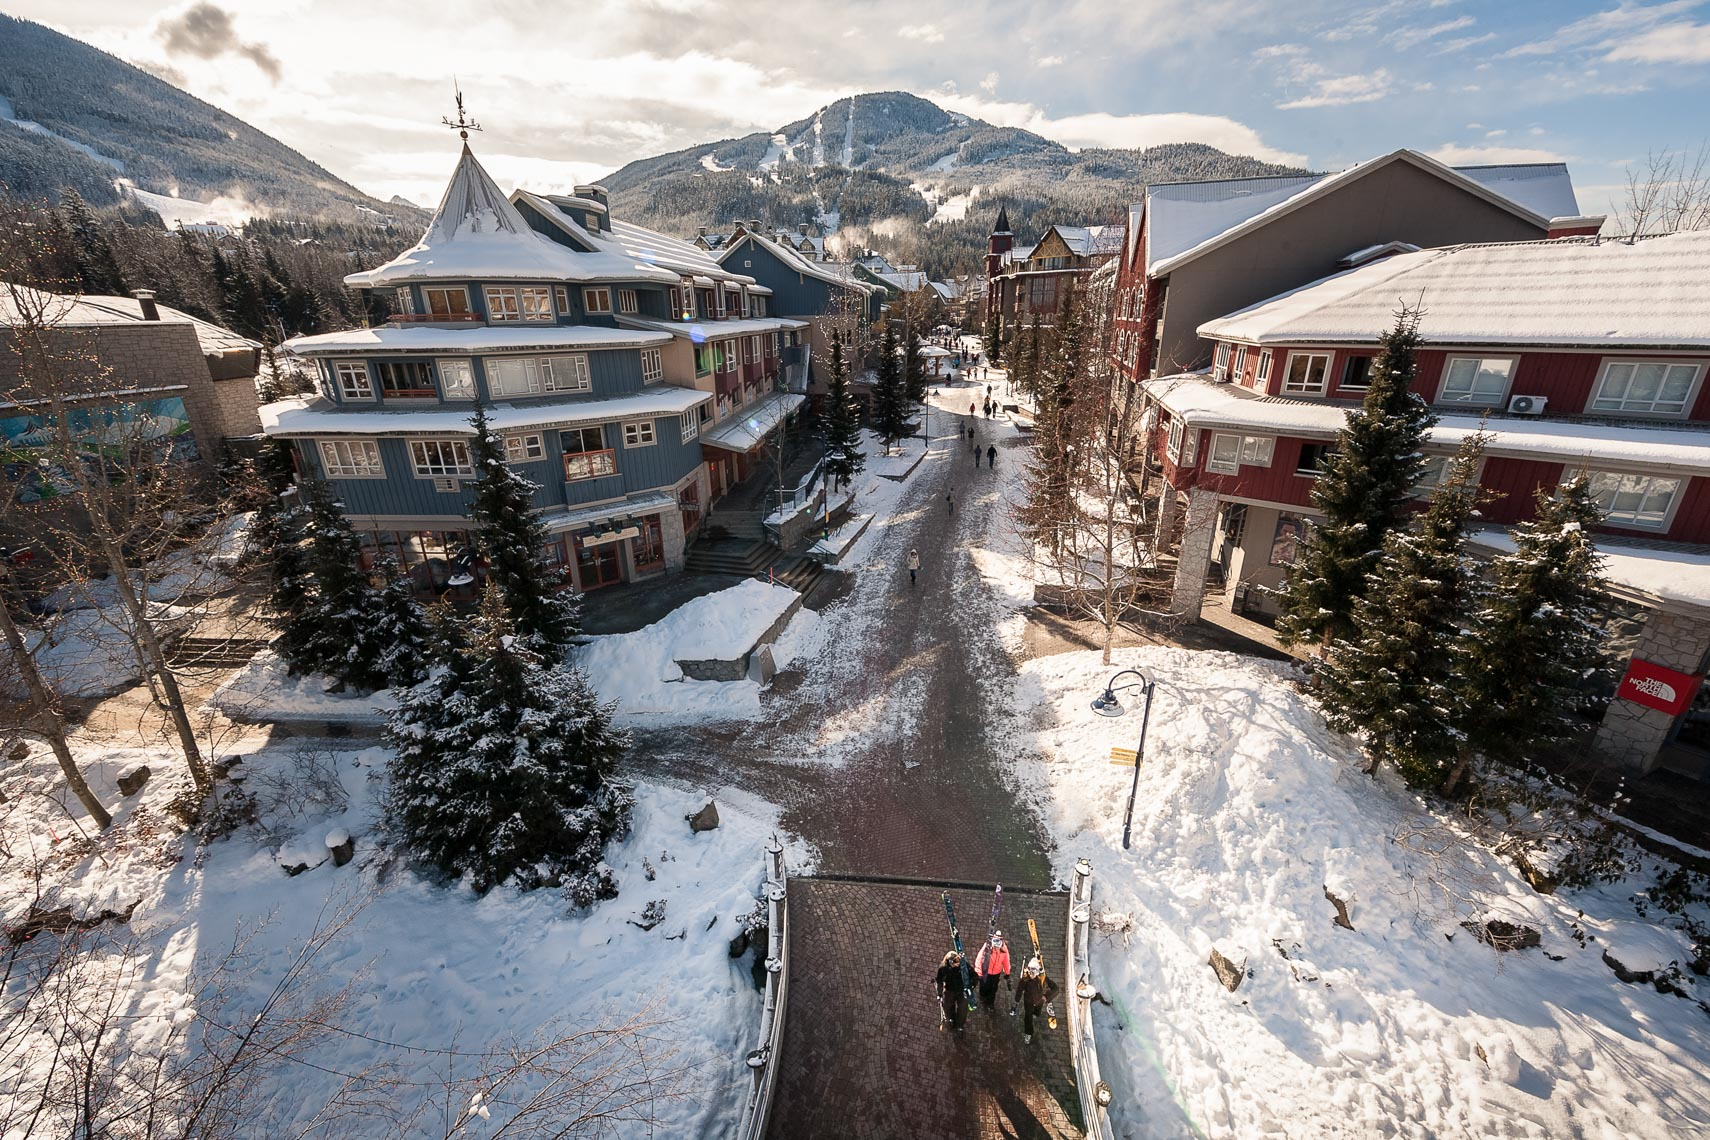 Whistler Village overview in the winter